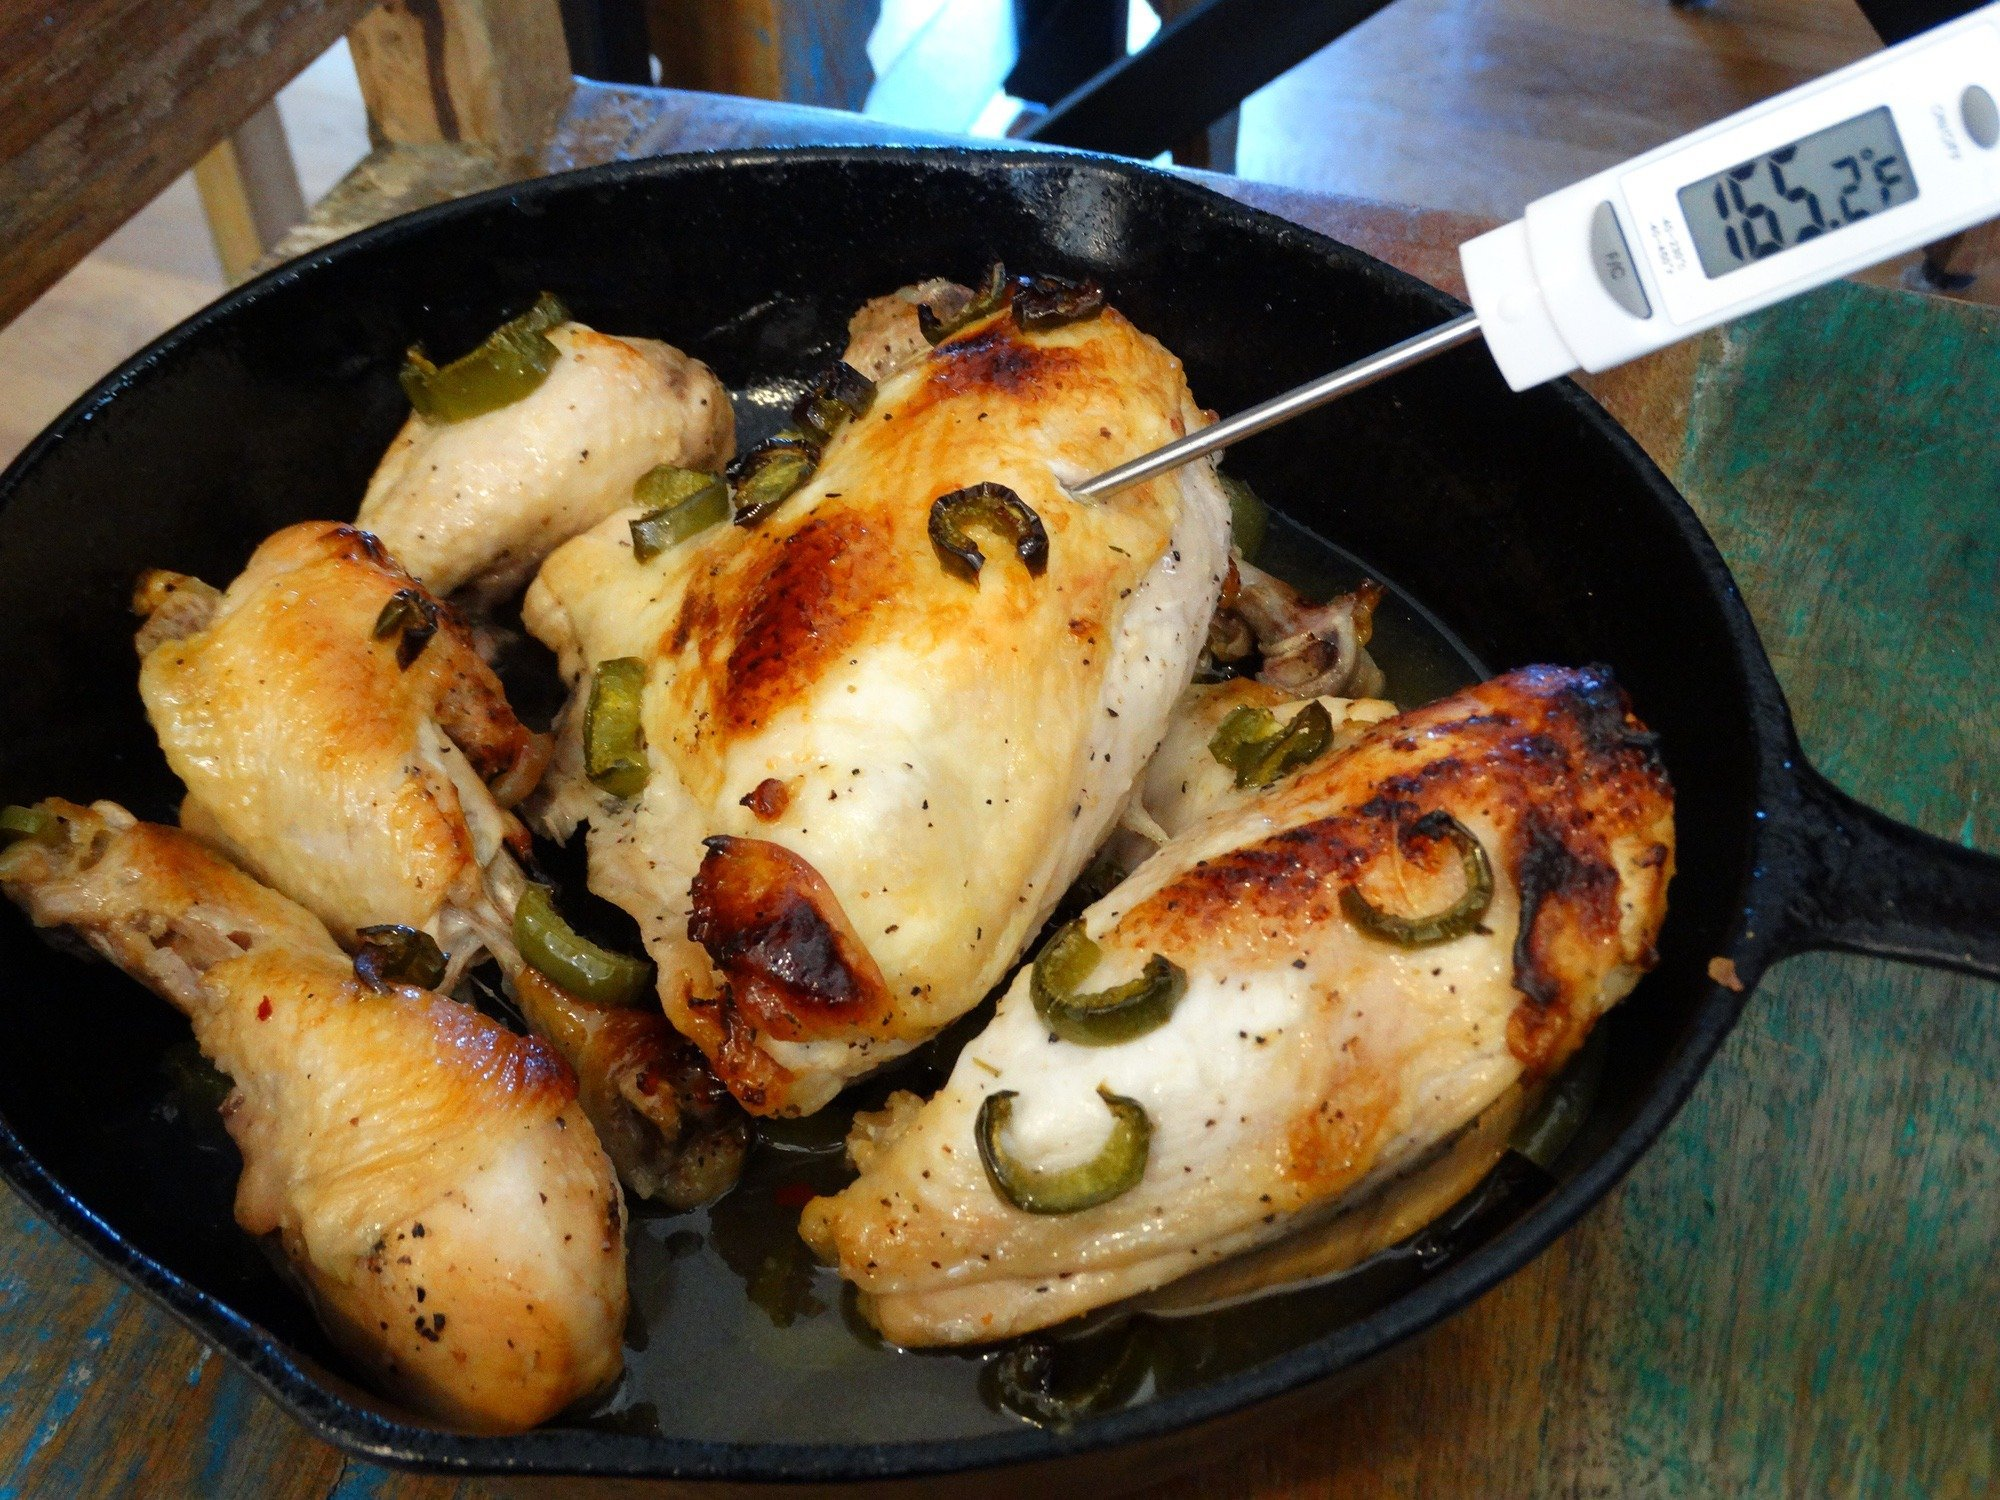 Caribbean Chicken Recipe - Use A Meat thermometer! 4